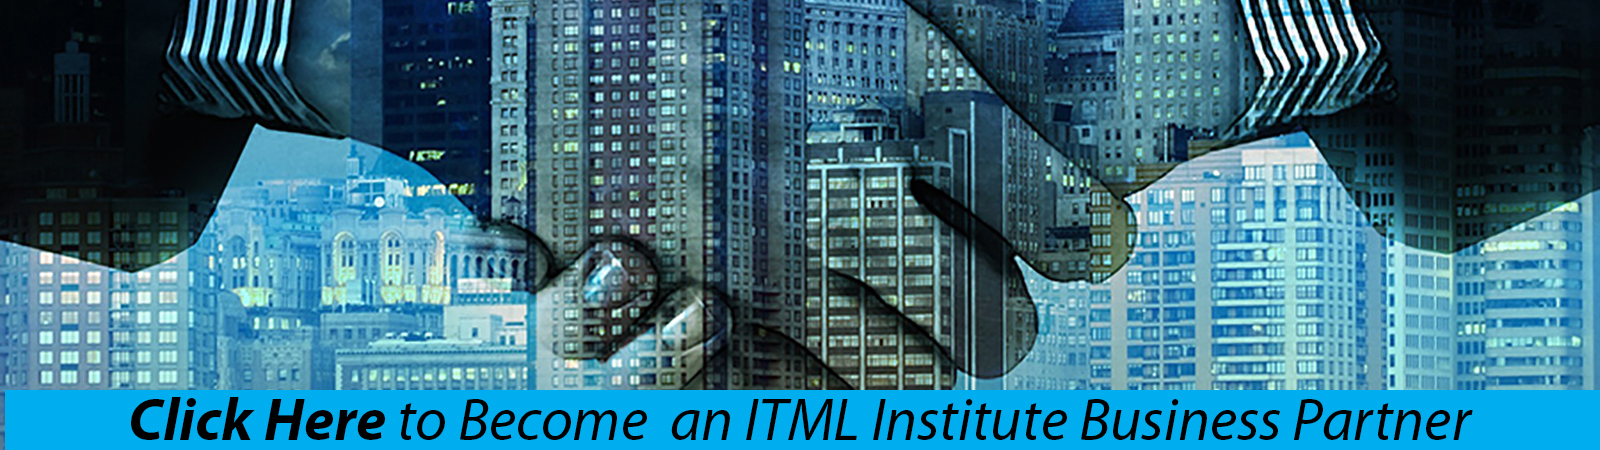 Become an ITML Institute Business Partner